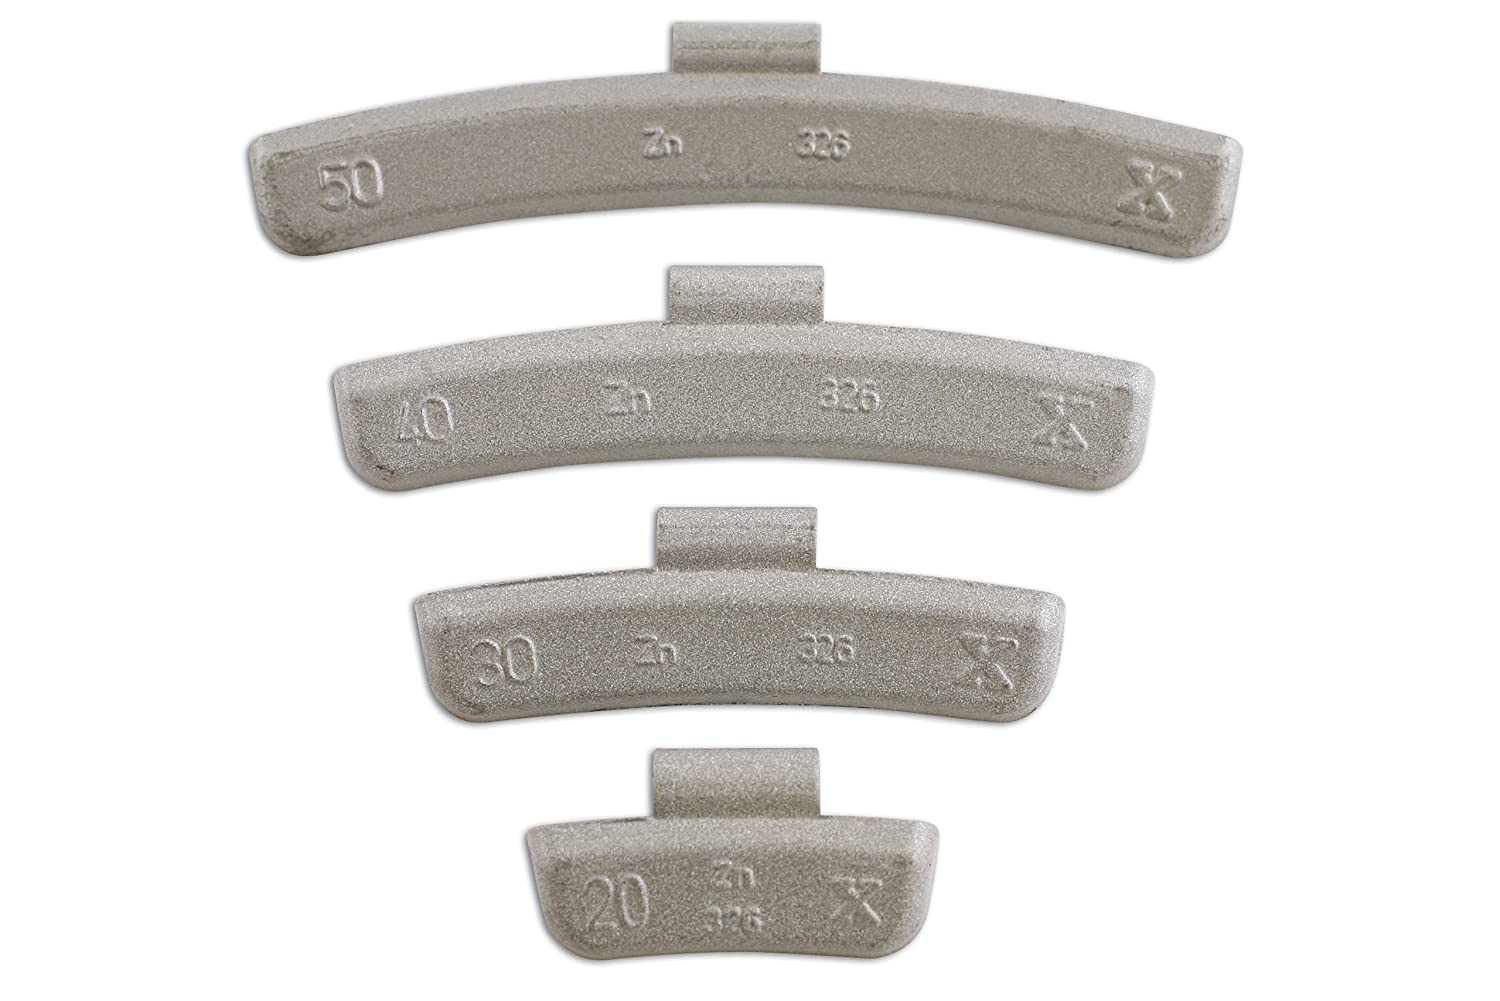 Connect 32855 15g Wheel Weights for Alloy Wheels (Box of 100) The Tool Connection Ltd.